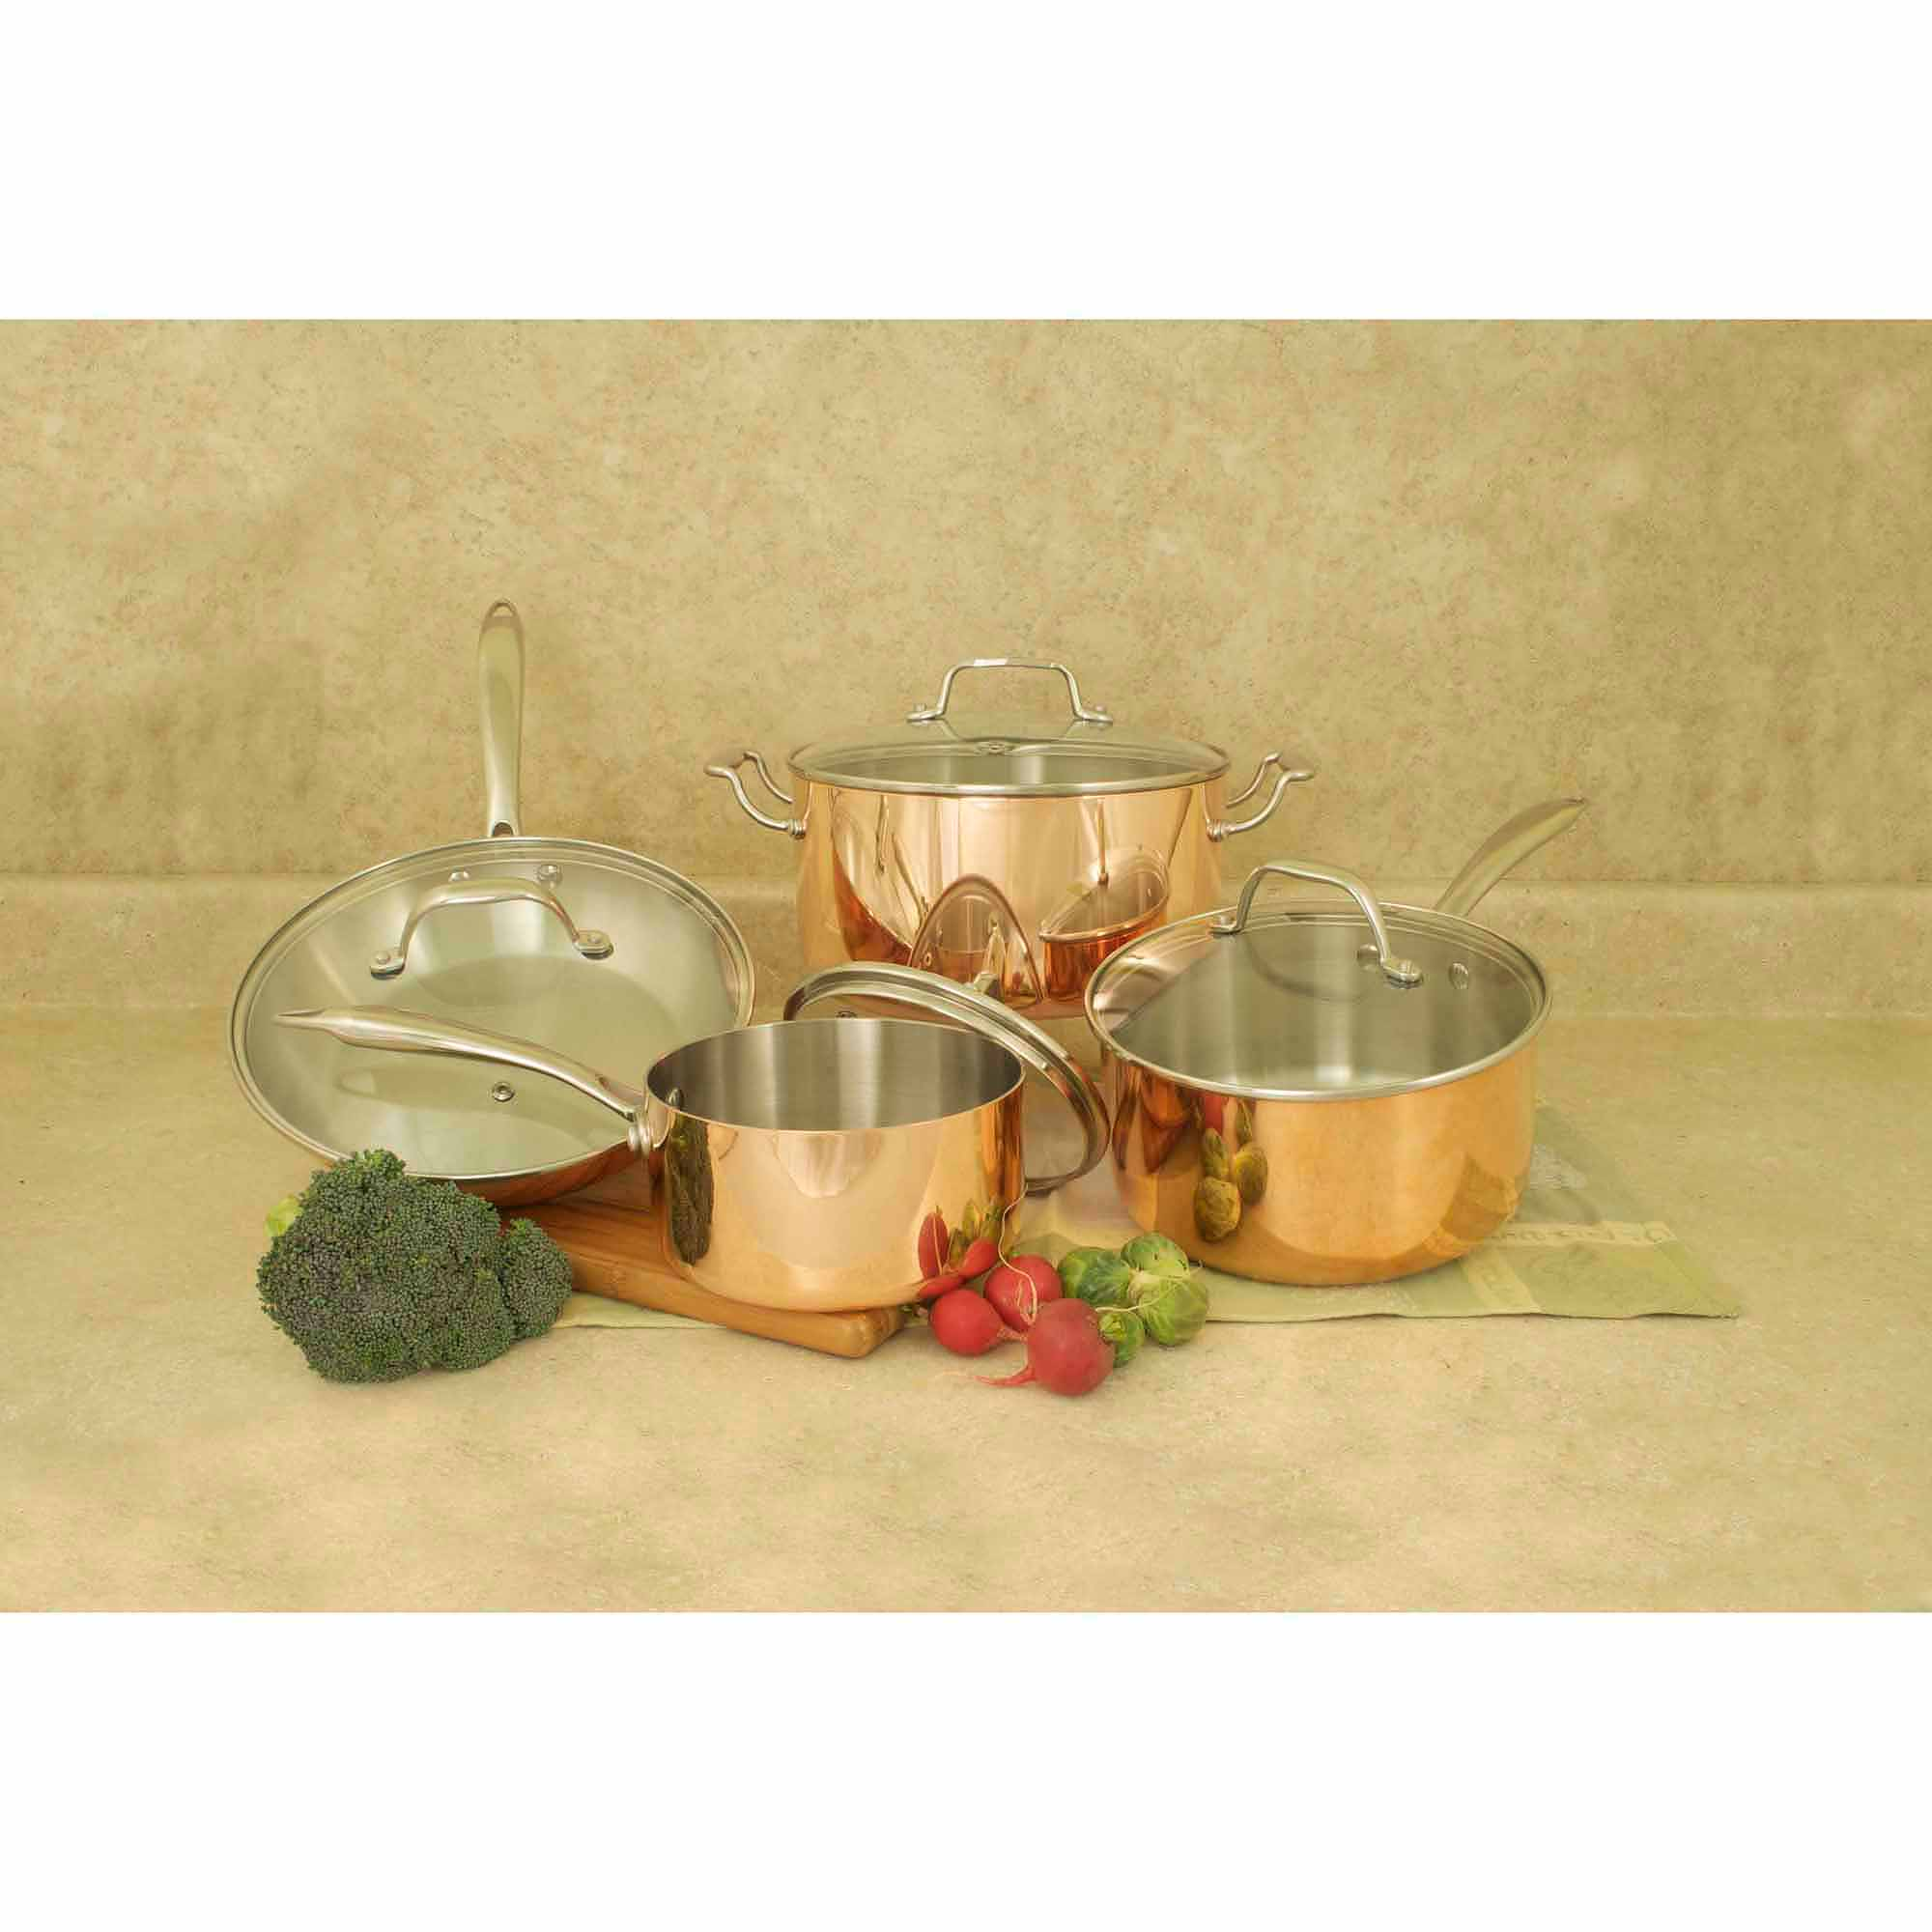 cook pro 8pc triply copper cookware set with glass lids